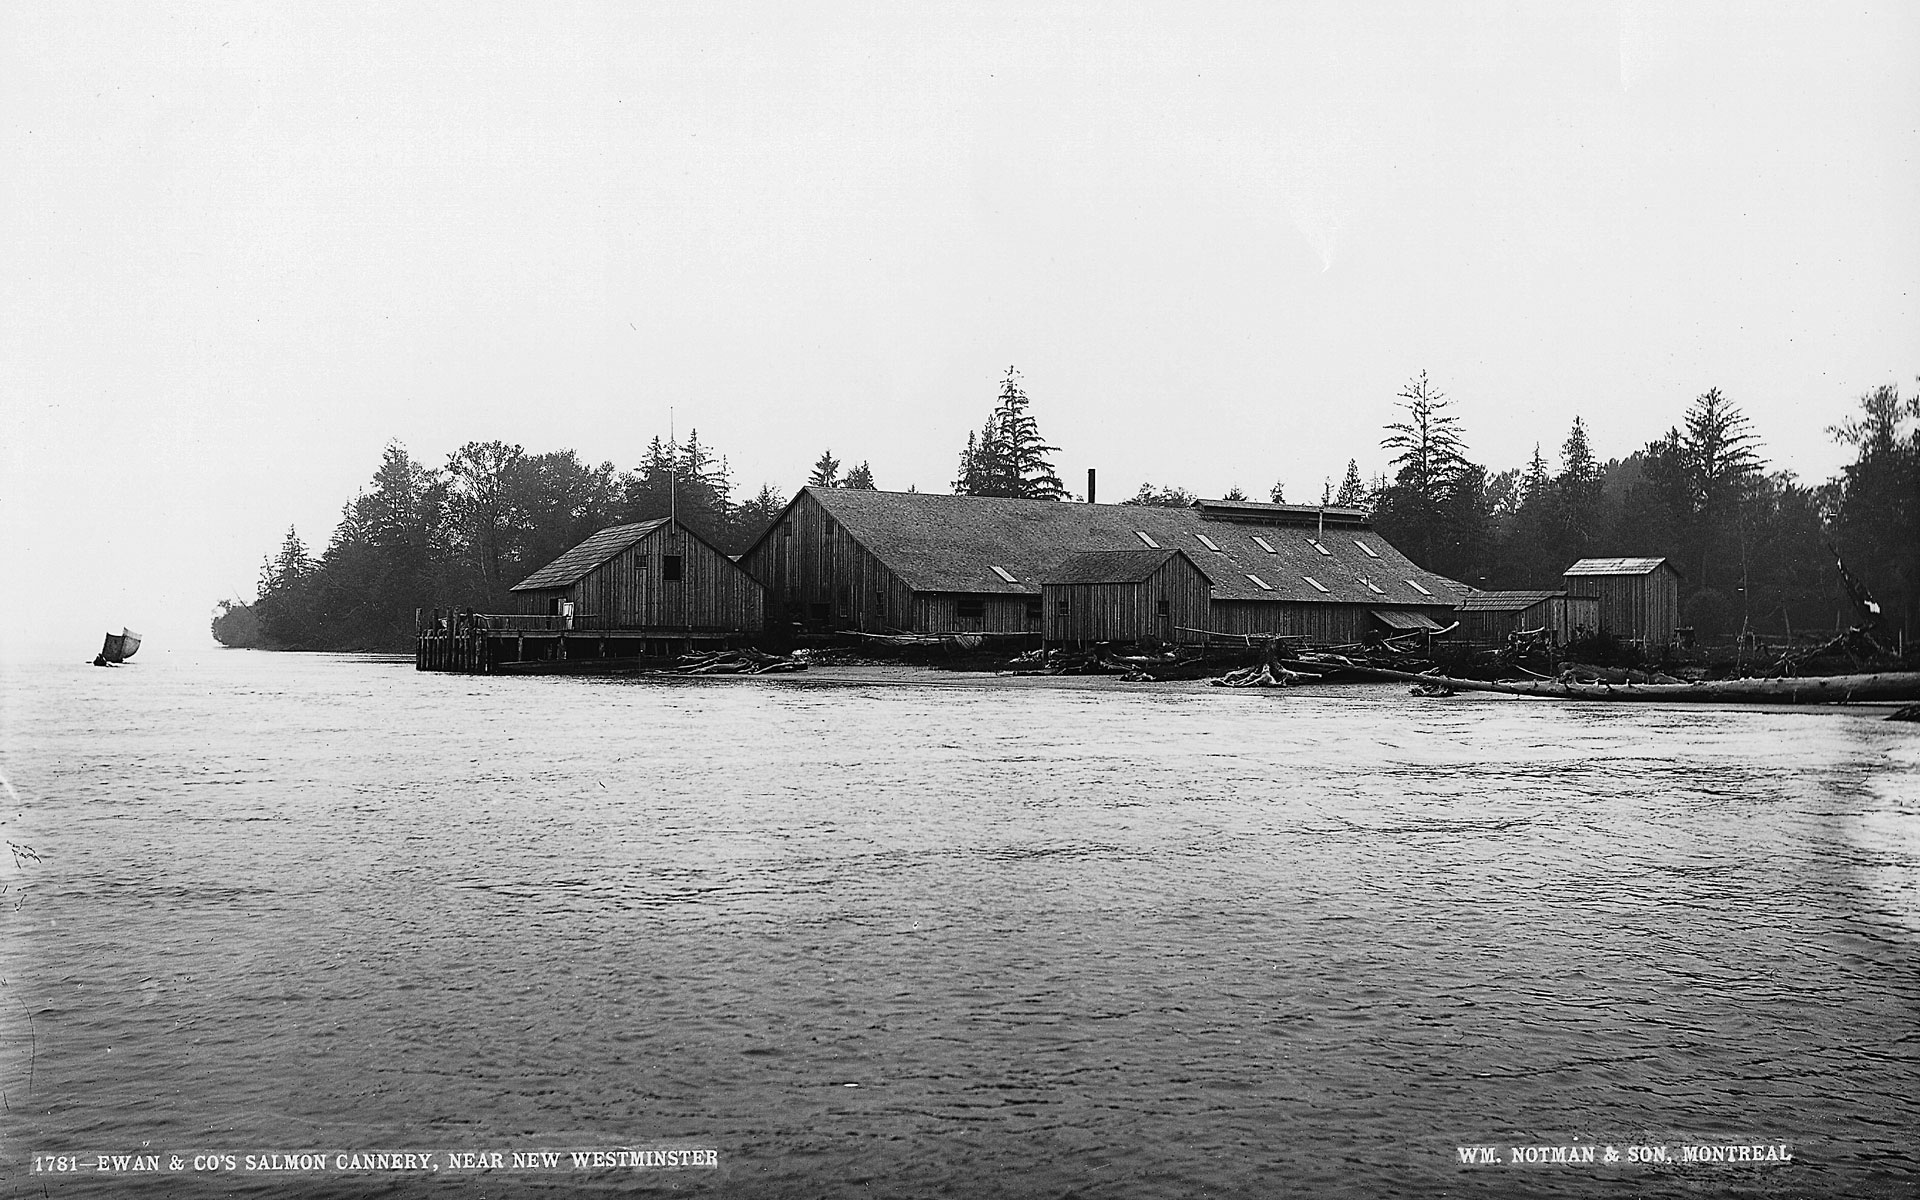 Cannery buildings in the distance with the Fraser River in the foreground.